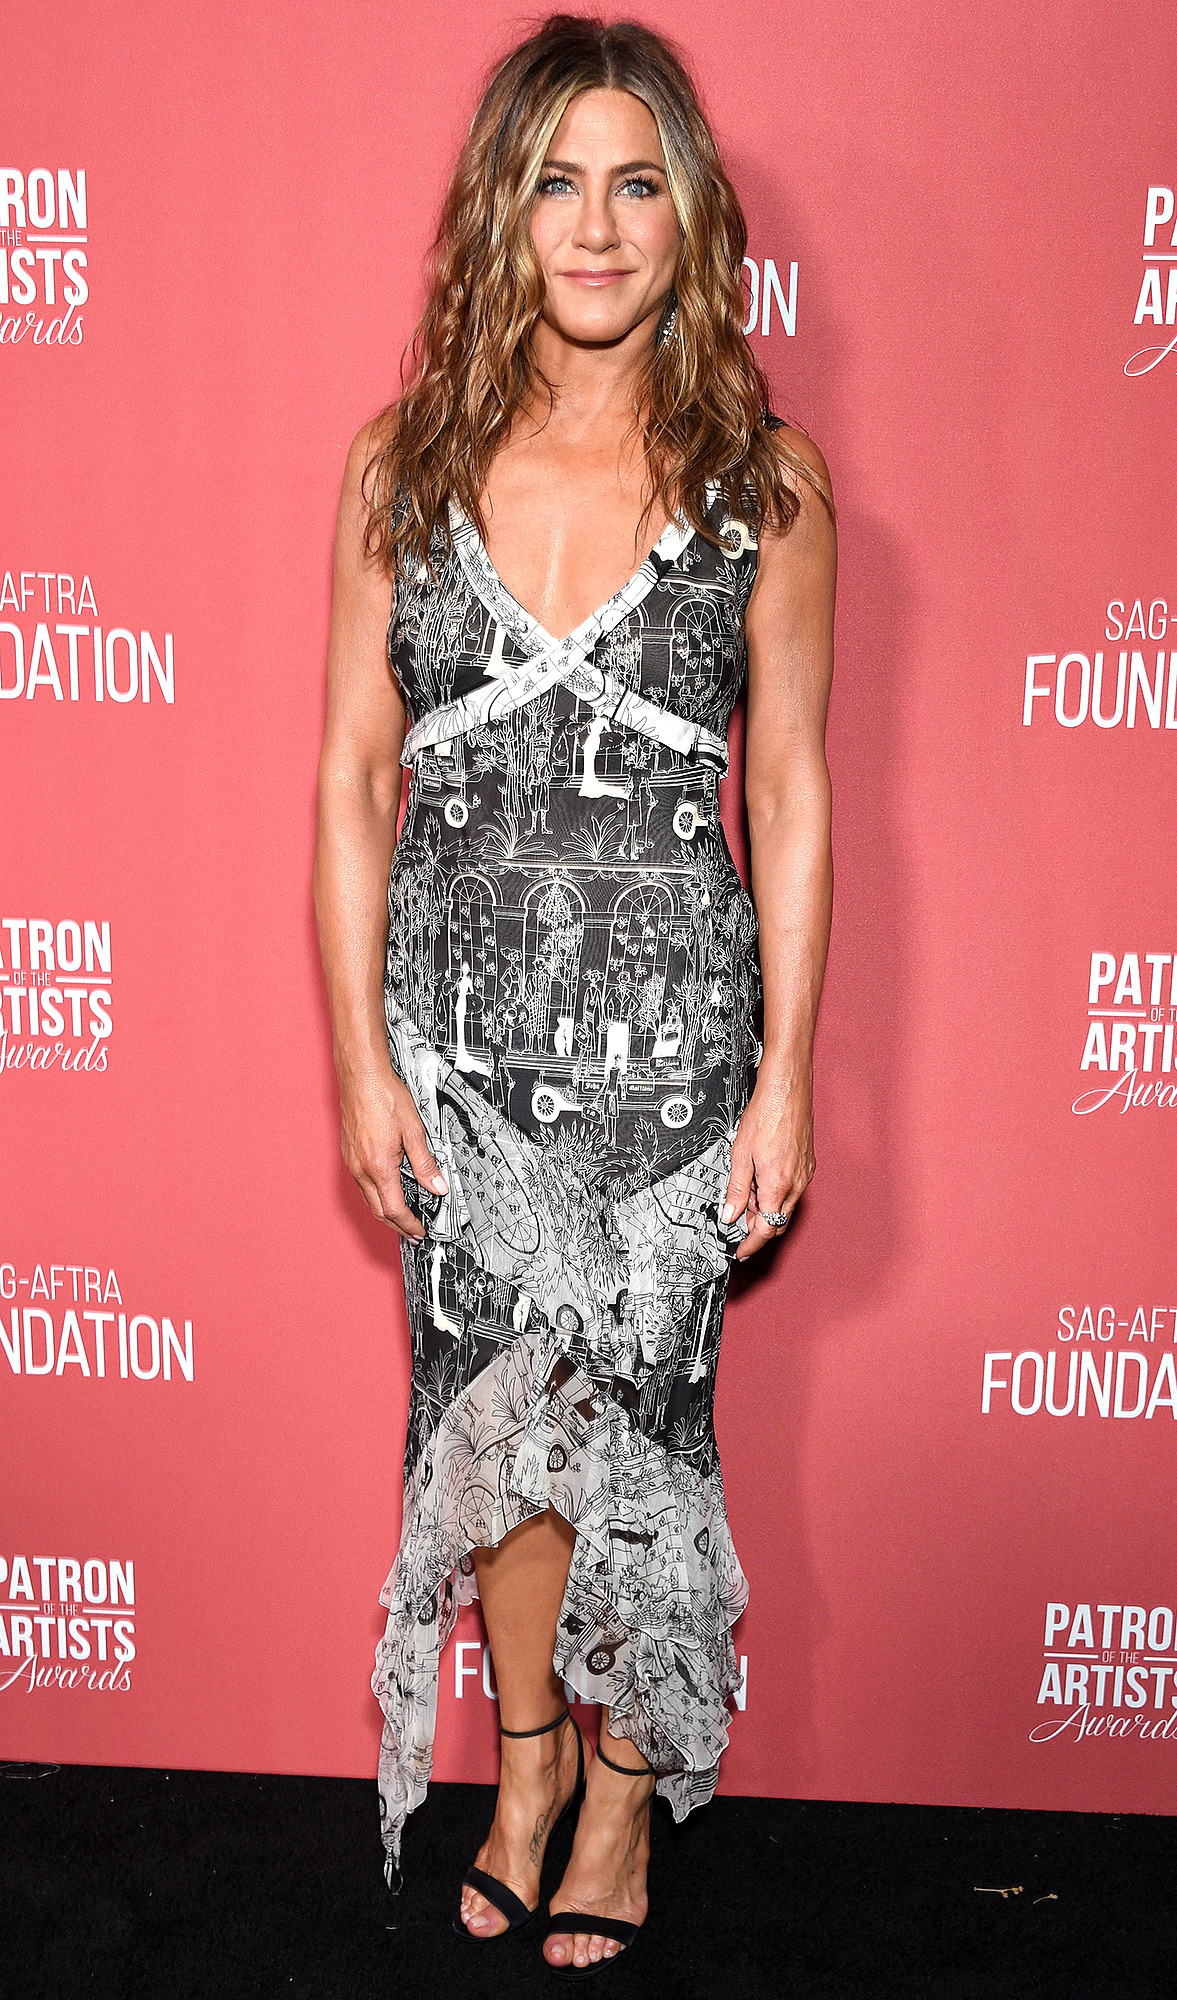 Jennifer Aniston attends SAG-AFTRA Foundation's 4th Annual Patron of the Artists Awards